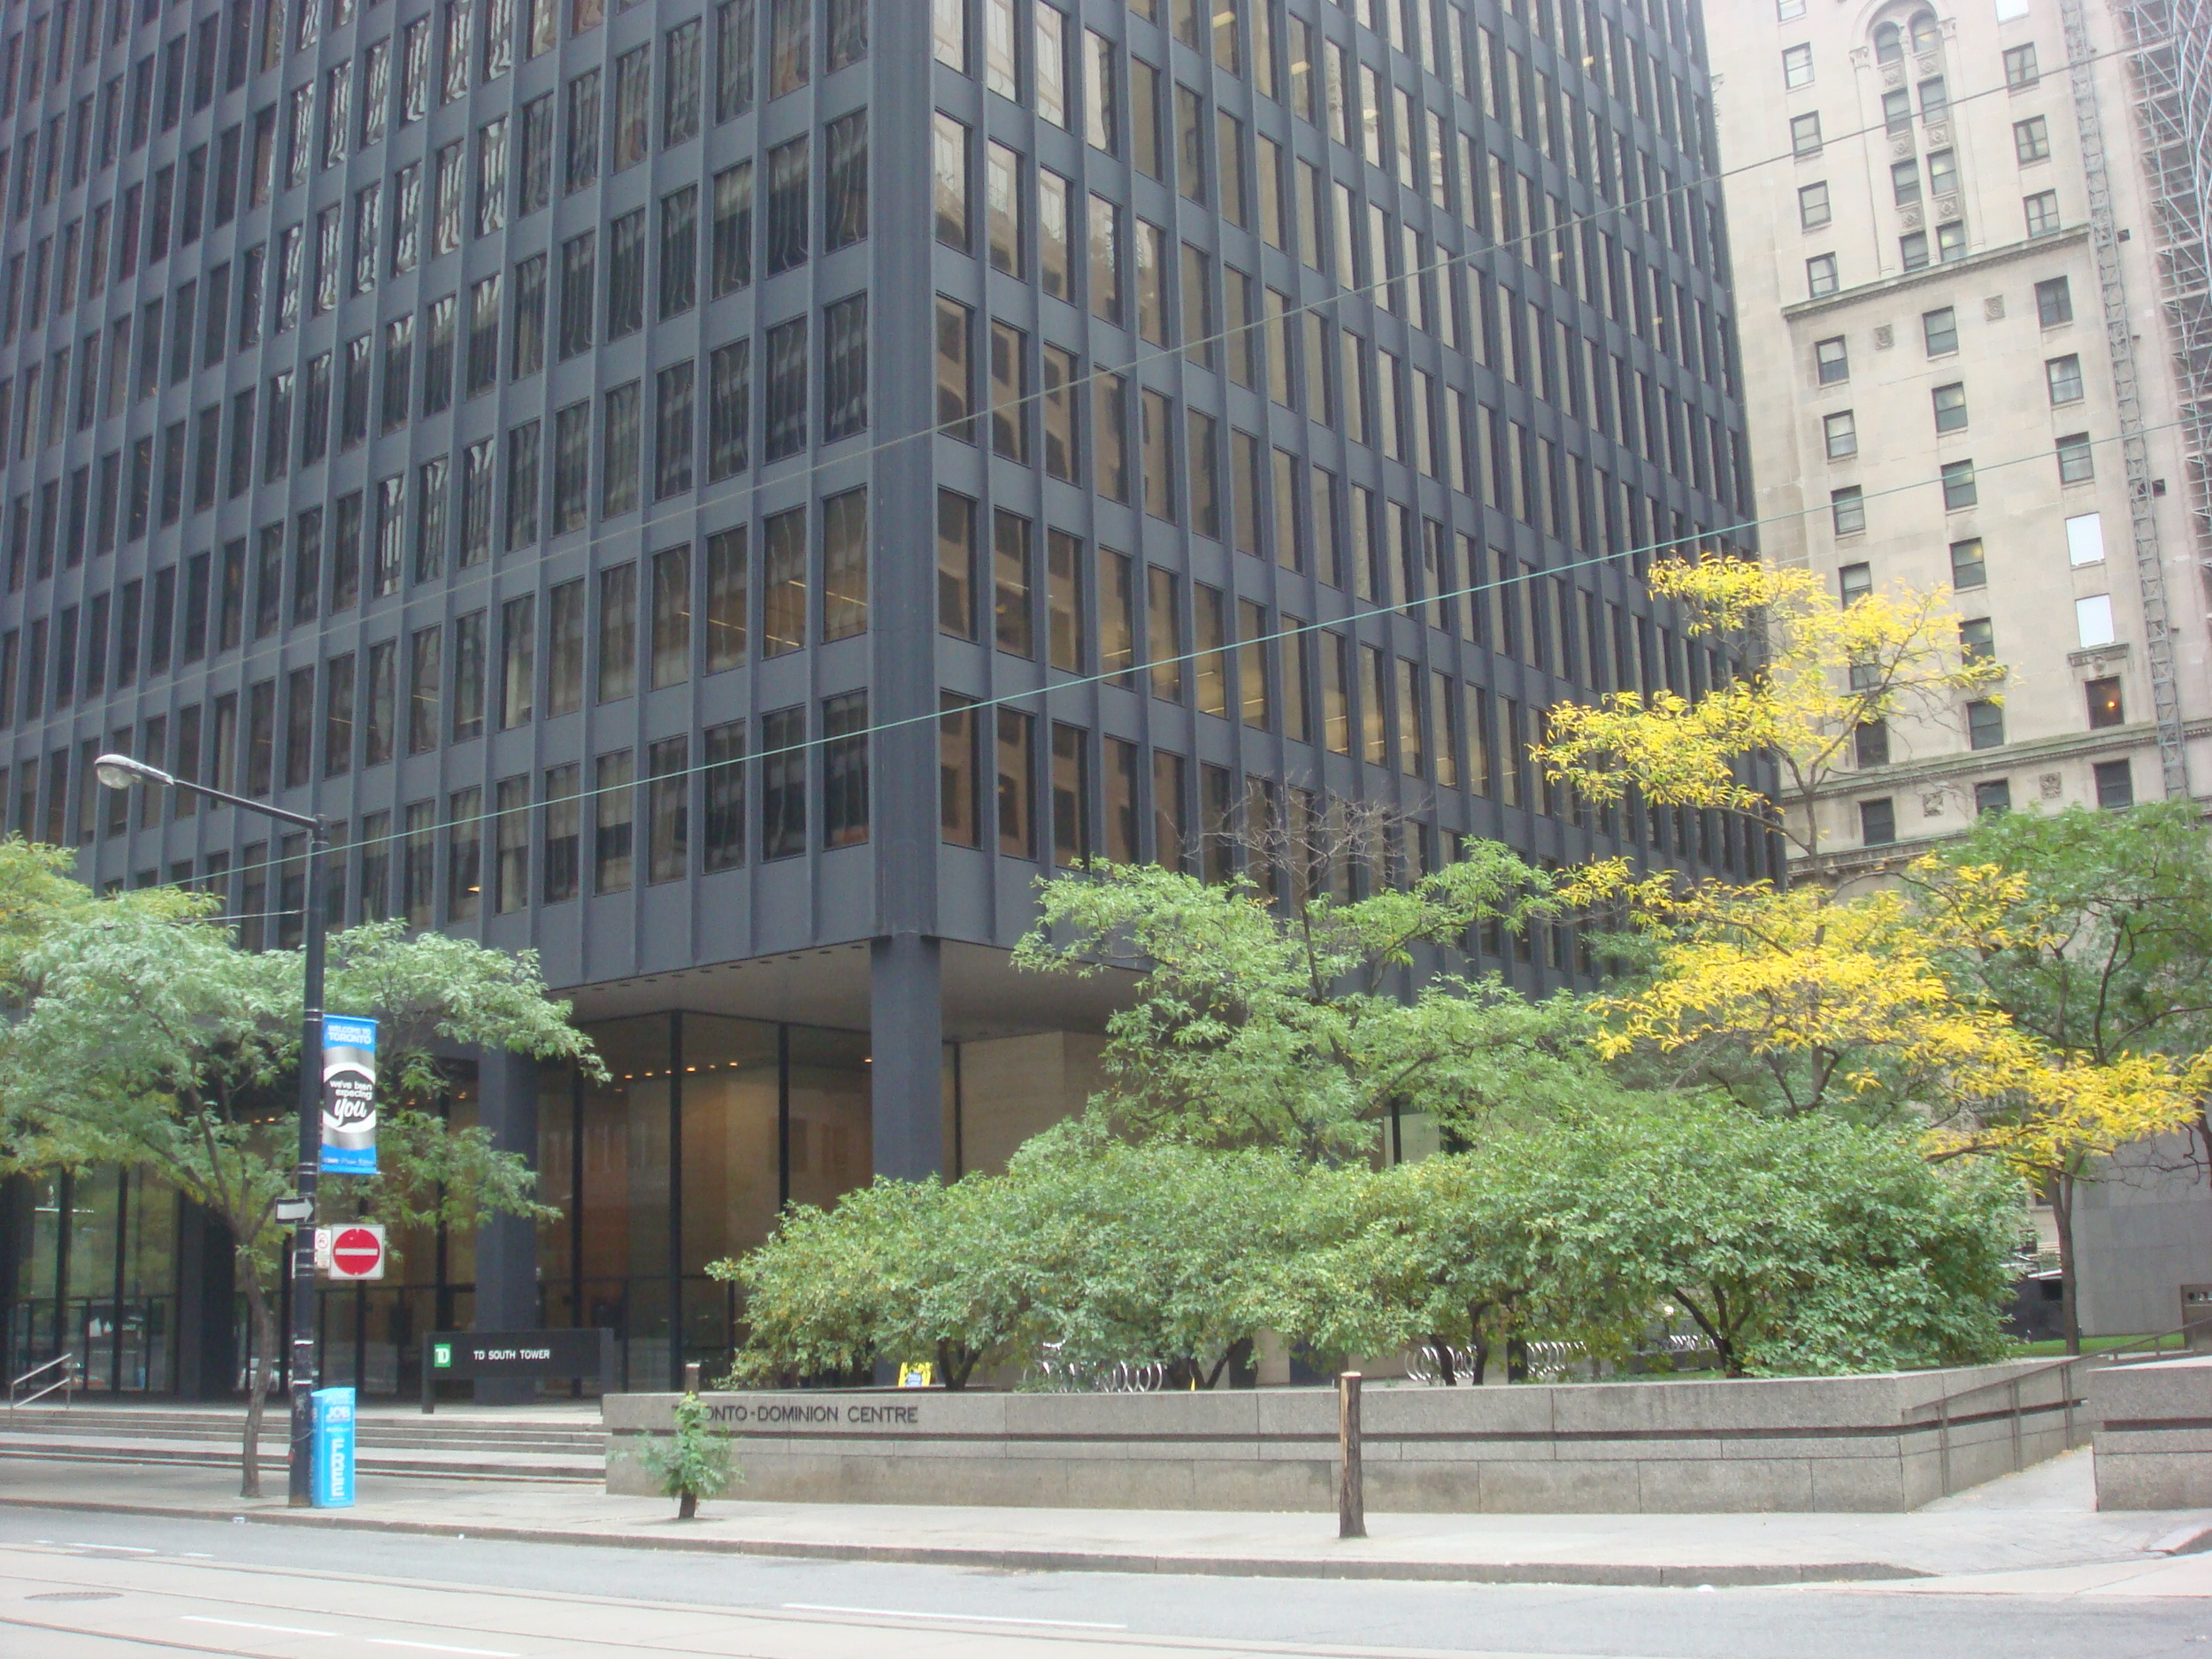 Picture of the outside of TD tower where you enter.